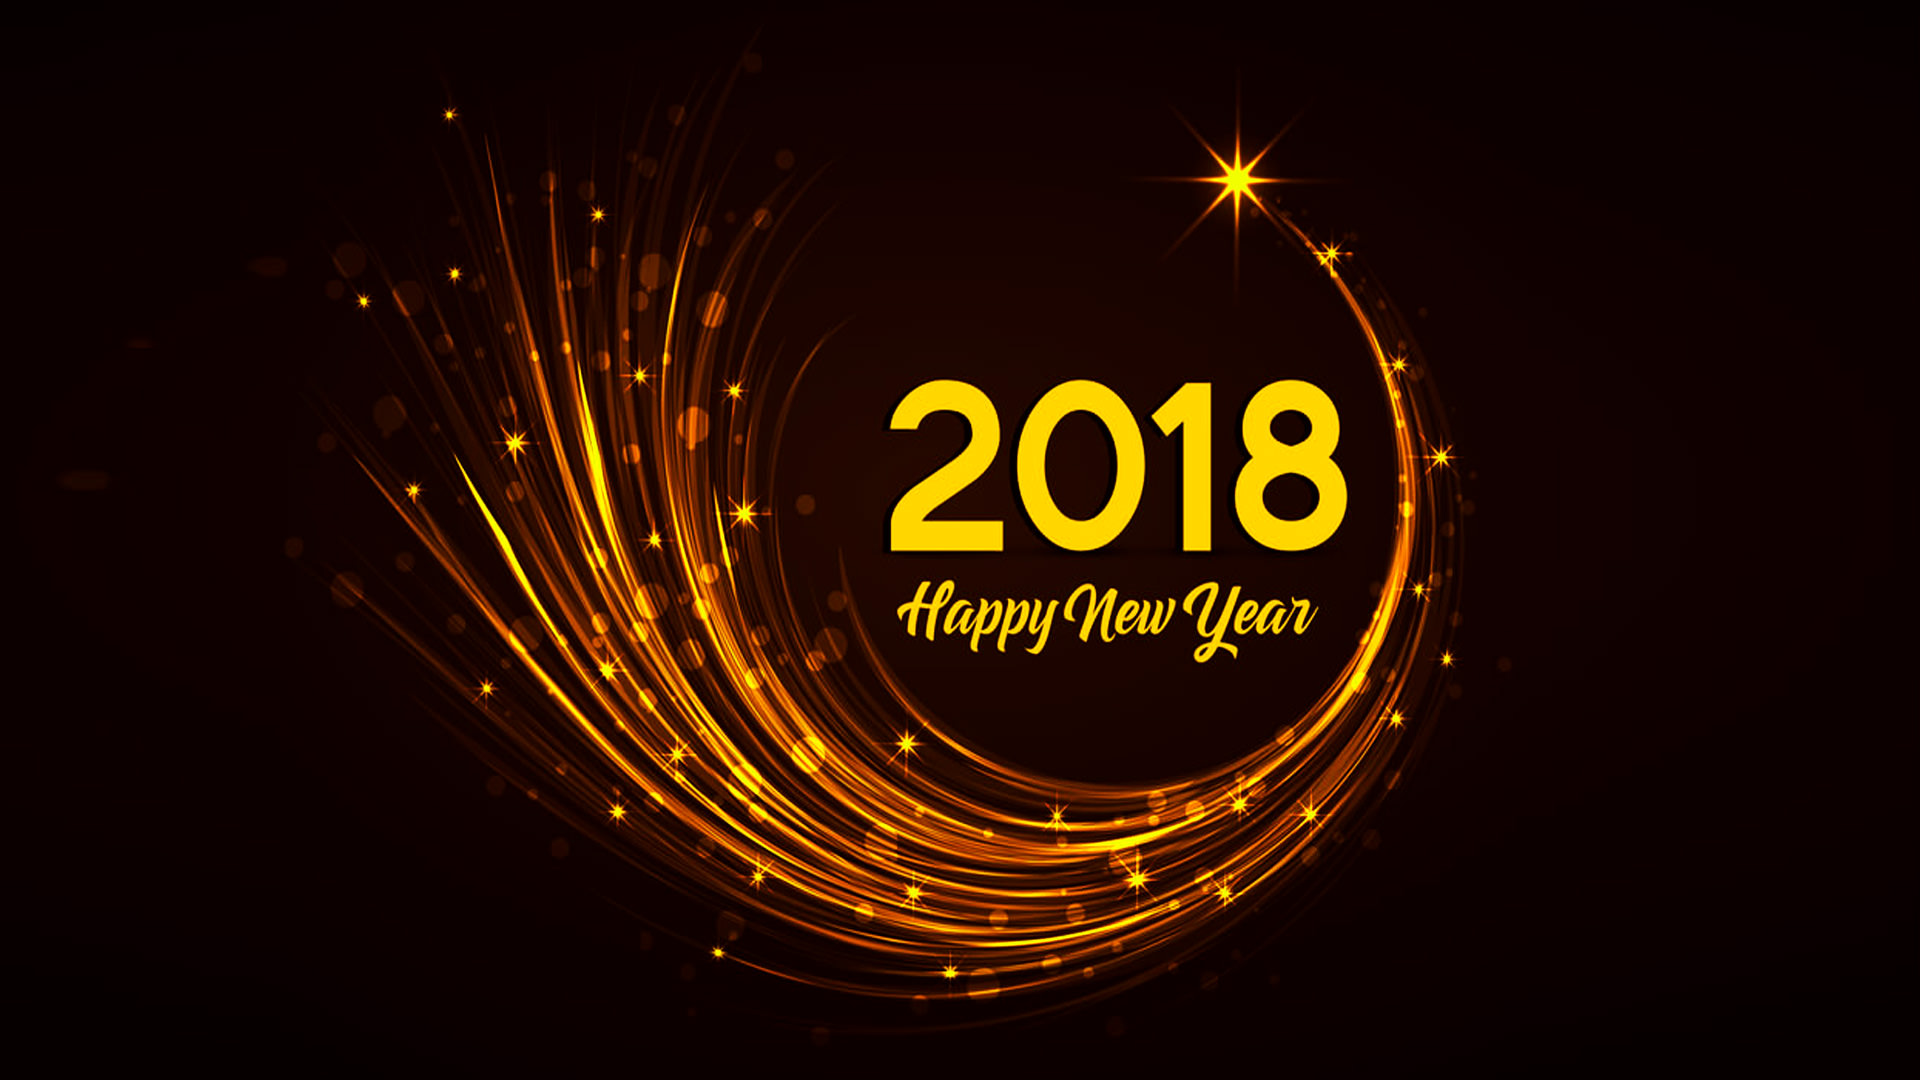 Special Happy New Year 2018 Wallpaper, Hd Greetings